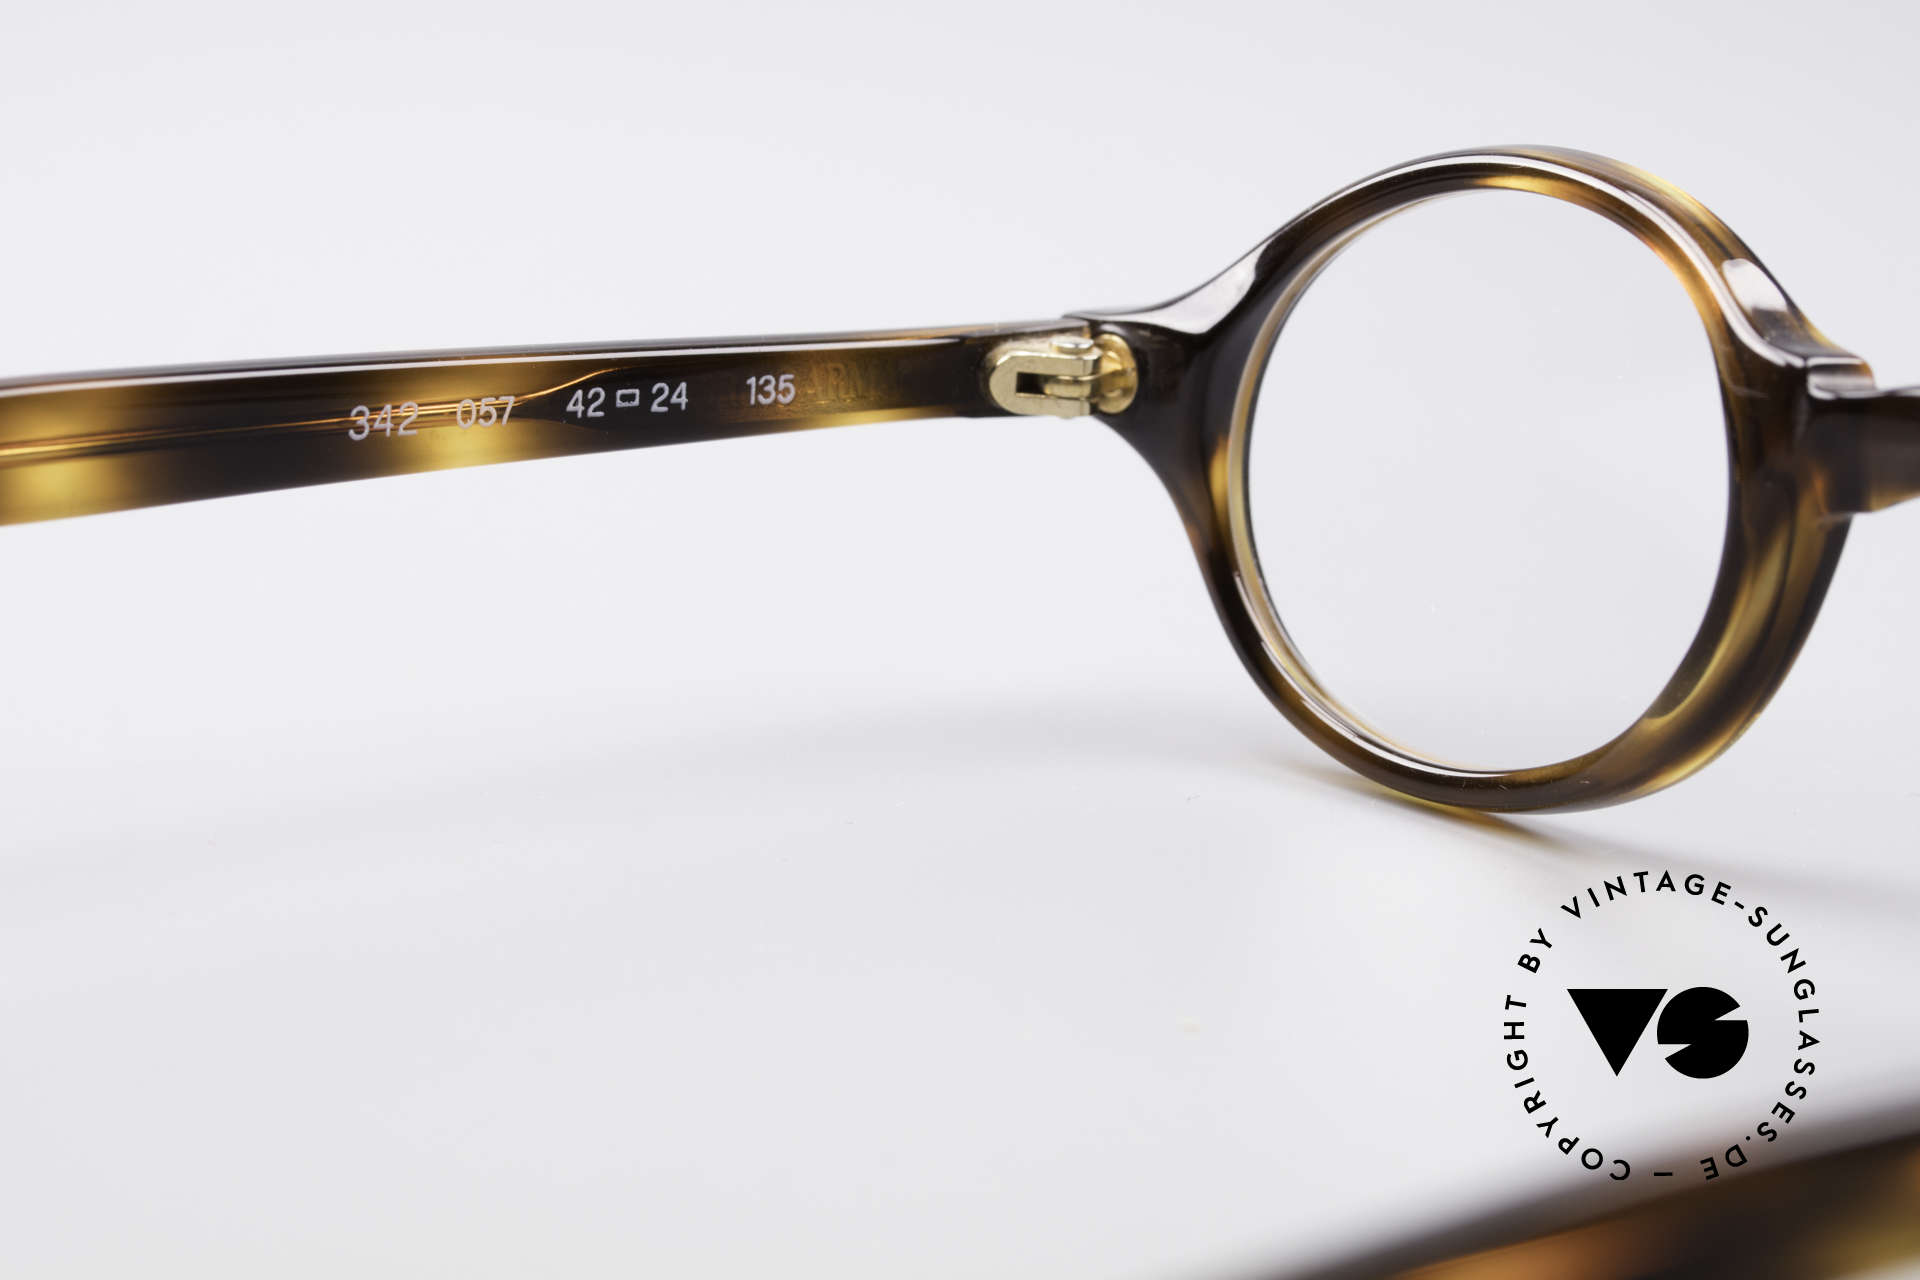 Giorgio Armani 342 Small Oval 90's Eyeglasses, the frame fits lenses of any kind (optical or sun lenses), Made for Men and Women